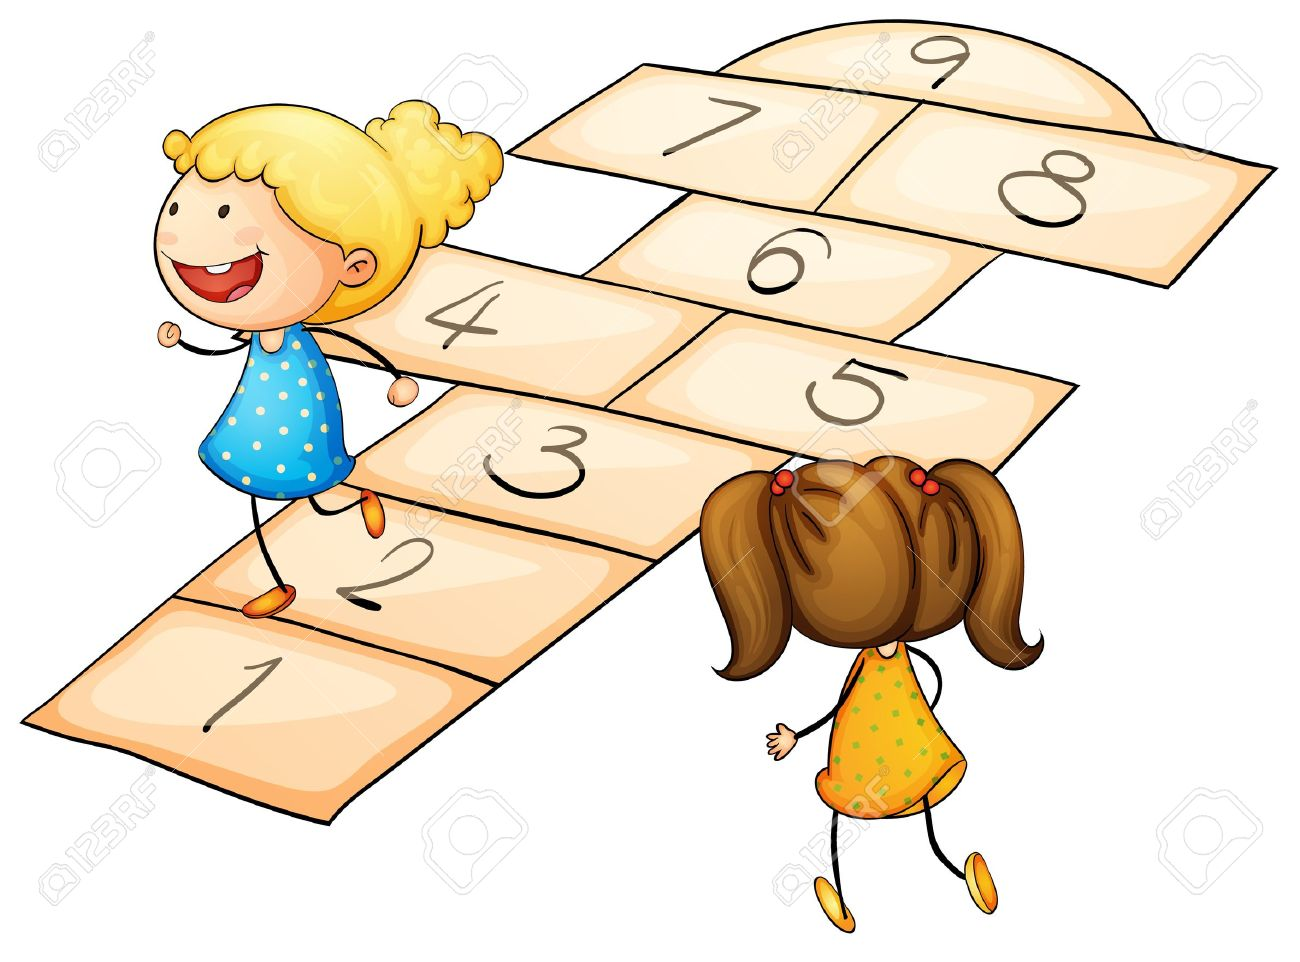 illustration of kids playing hopscotch royalty free cliparts